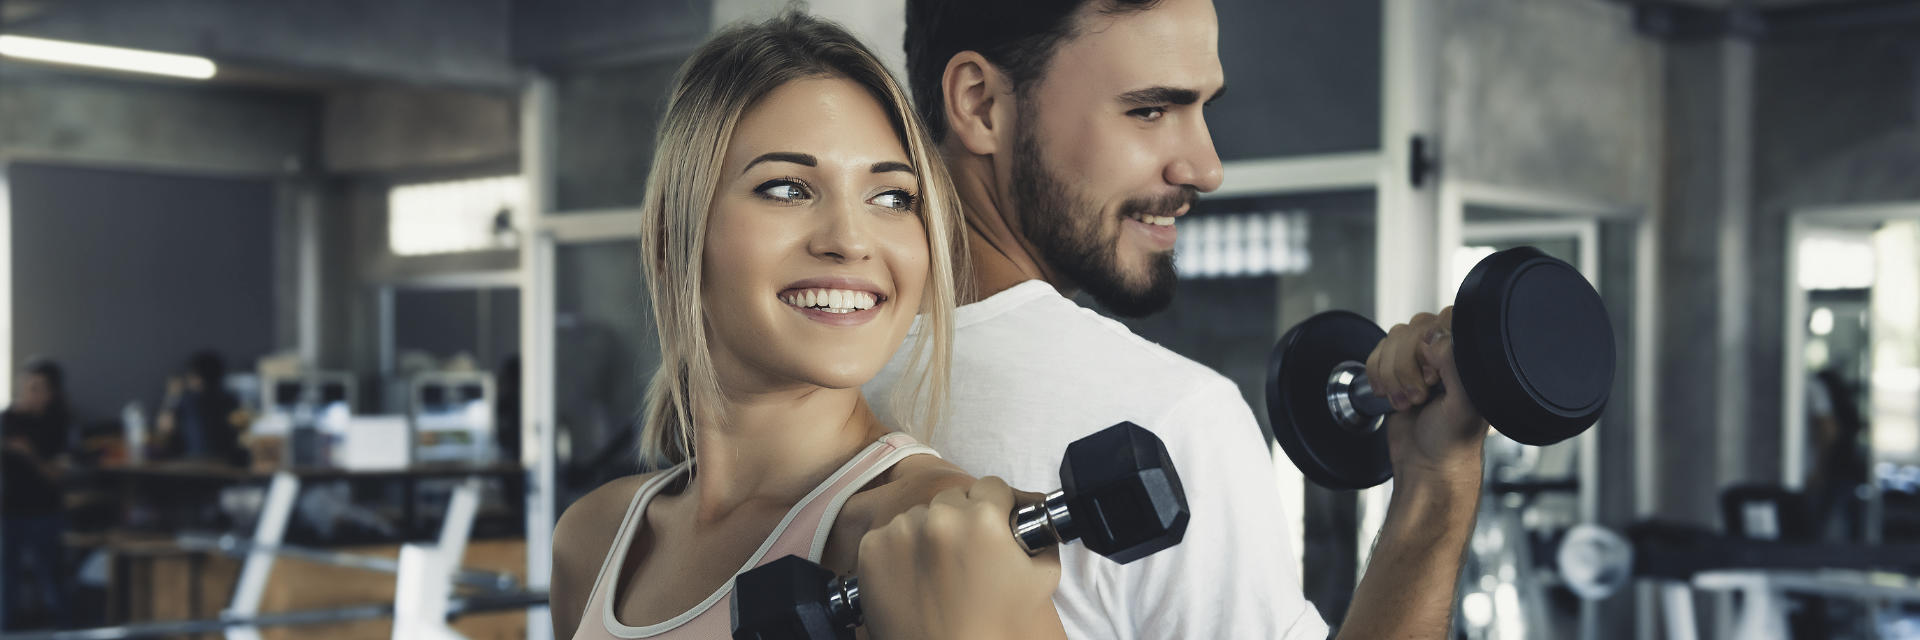 couple at the gym exercising with weights, happy, healthy, young people